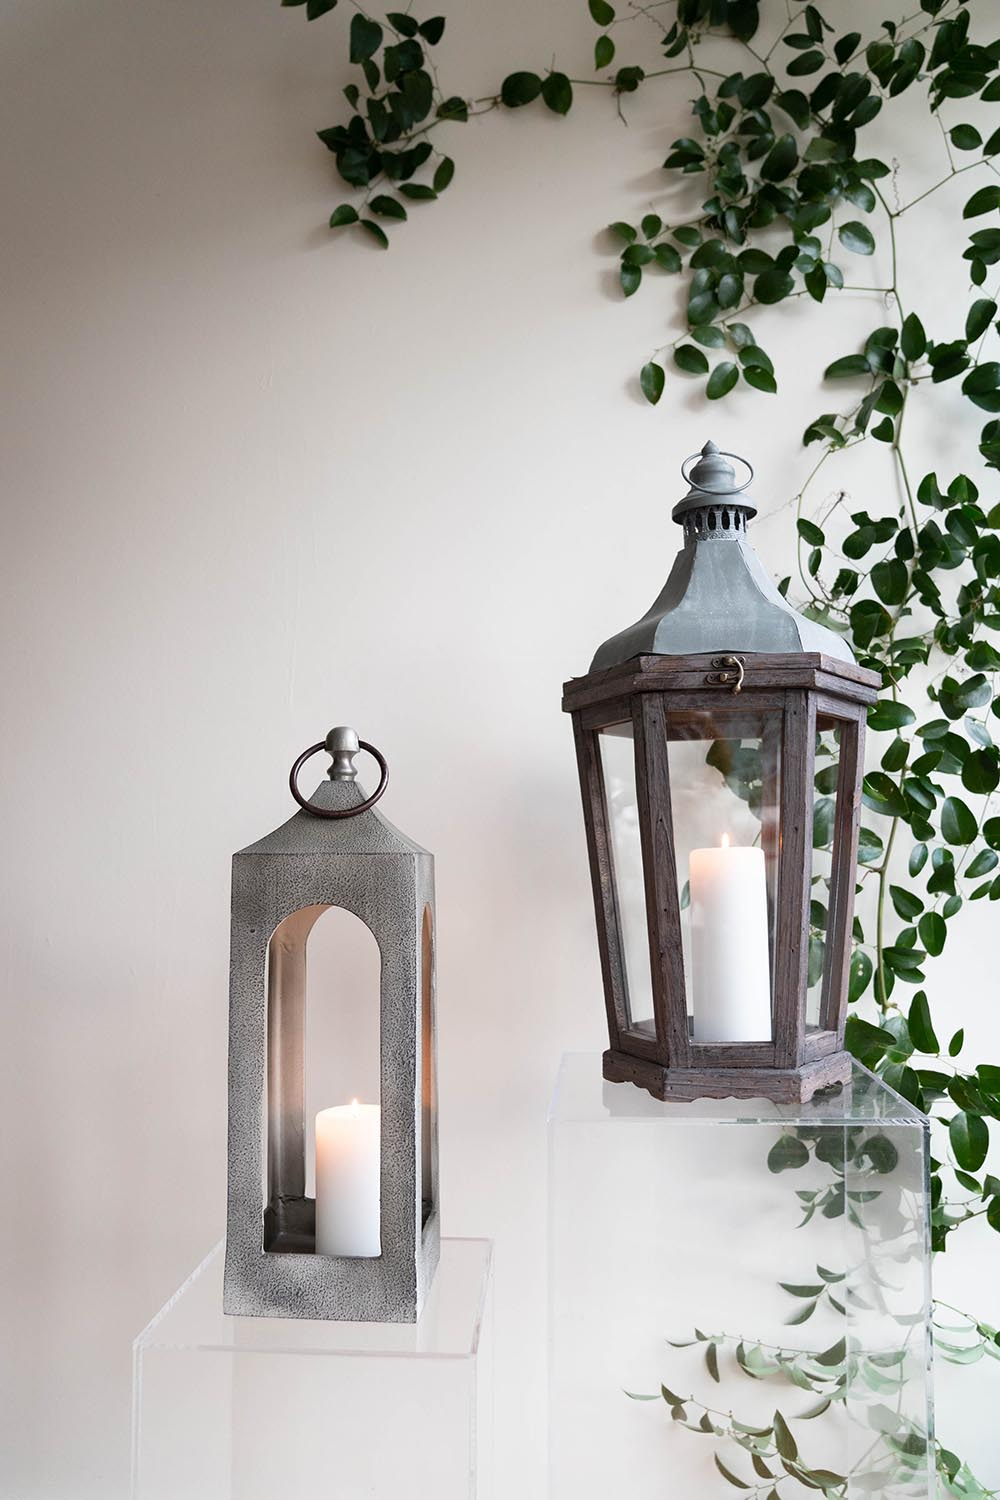 Cast iron and Park Hill Lanterns